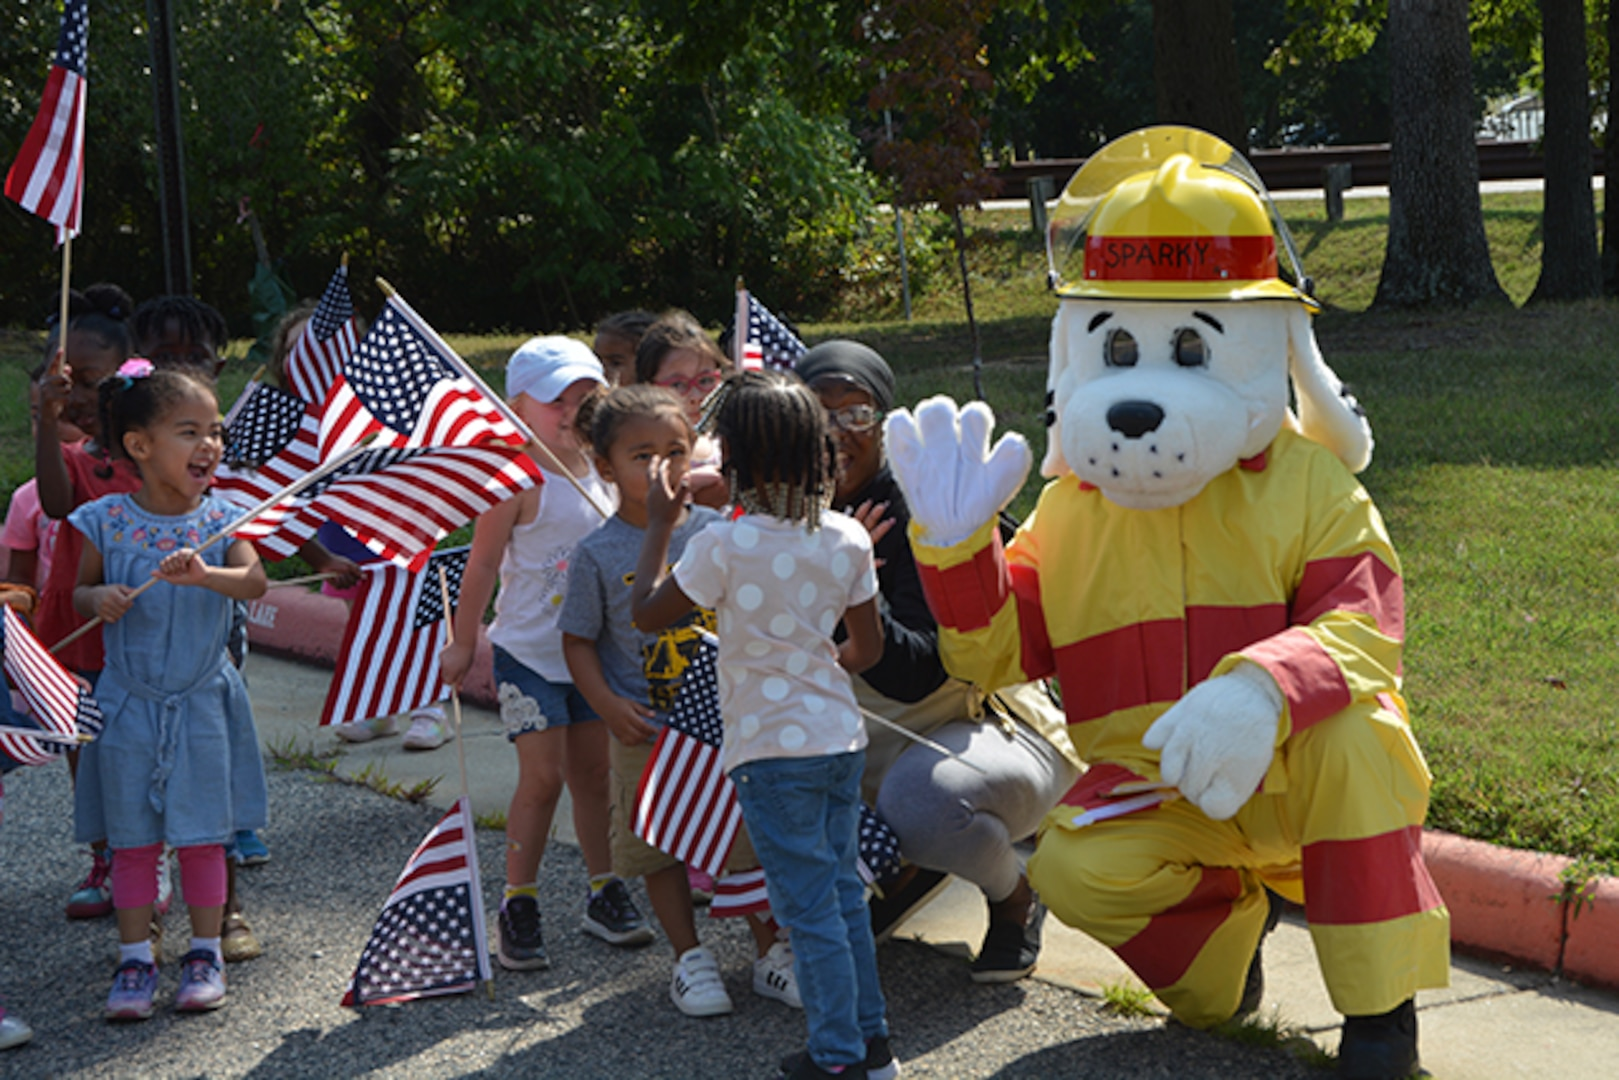 Children walk with Sparky, the fire dog